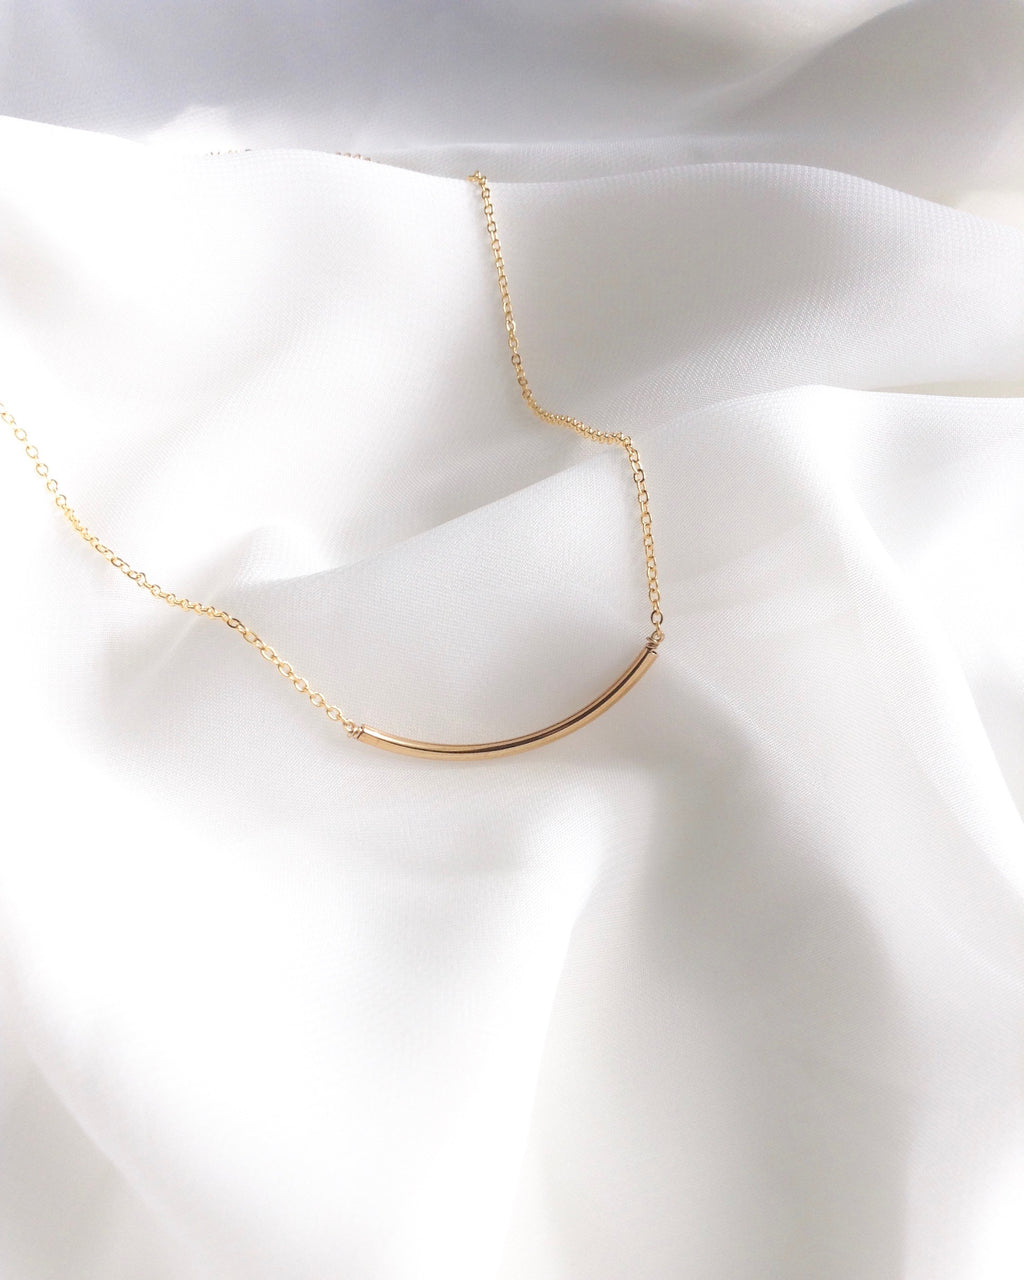 Curved Bar Necklace | Slim Bar Necklace in Gold Filled or Sterling Silver | IB Jewelry